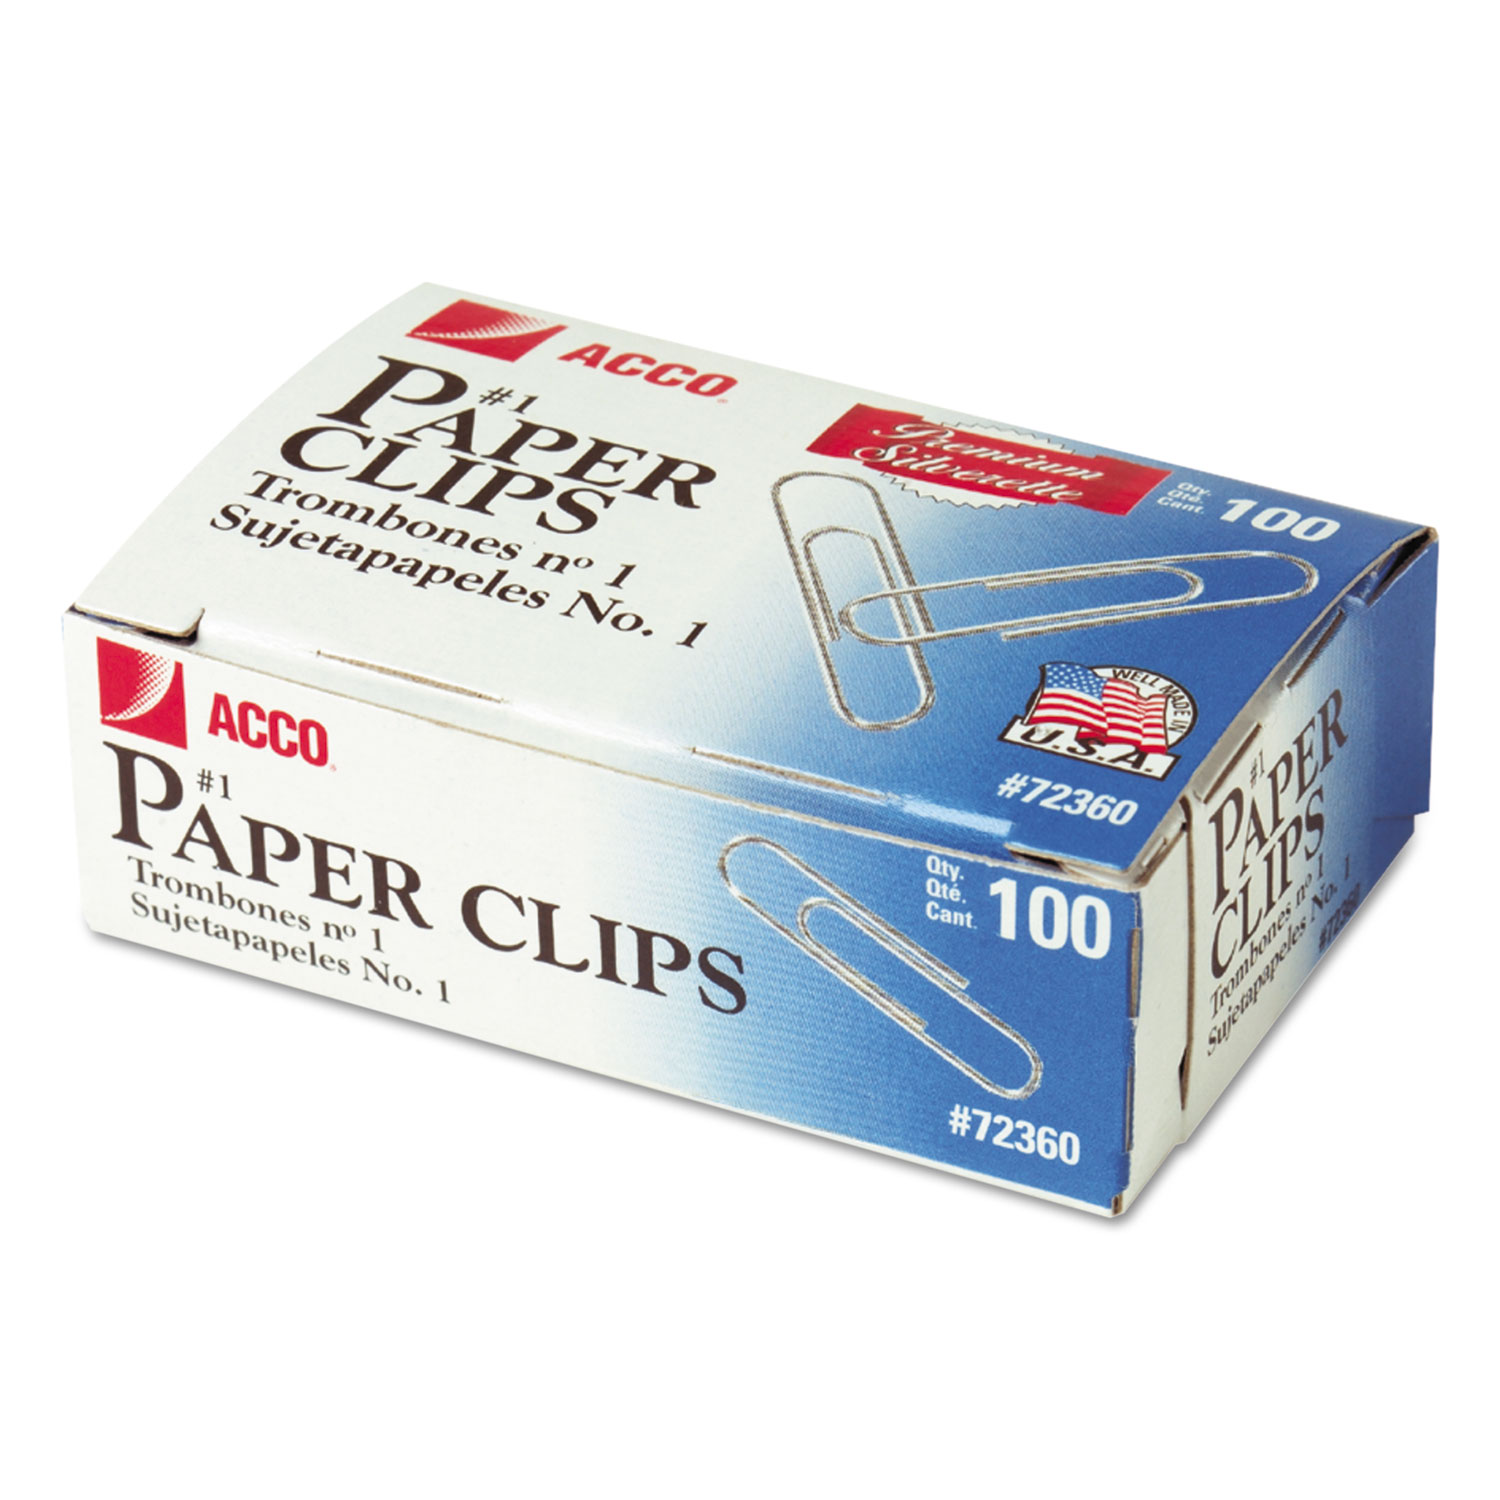 premium paper clips by acco acc72360 | ontimesupplies